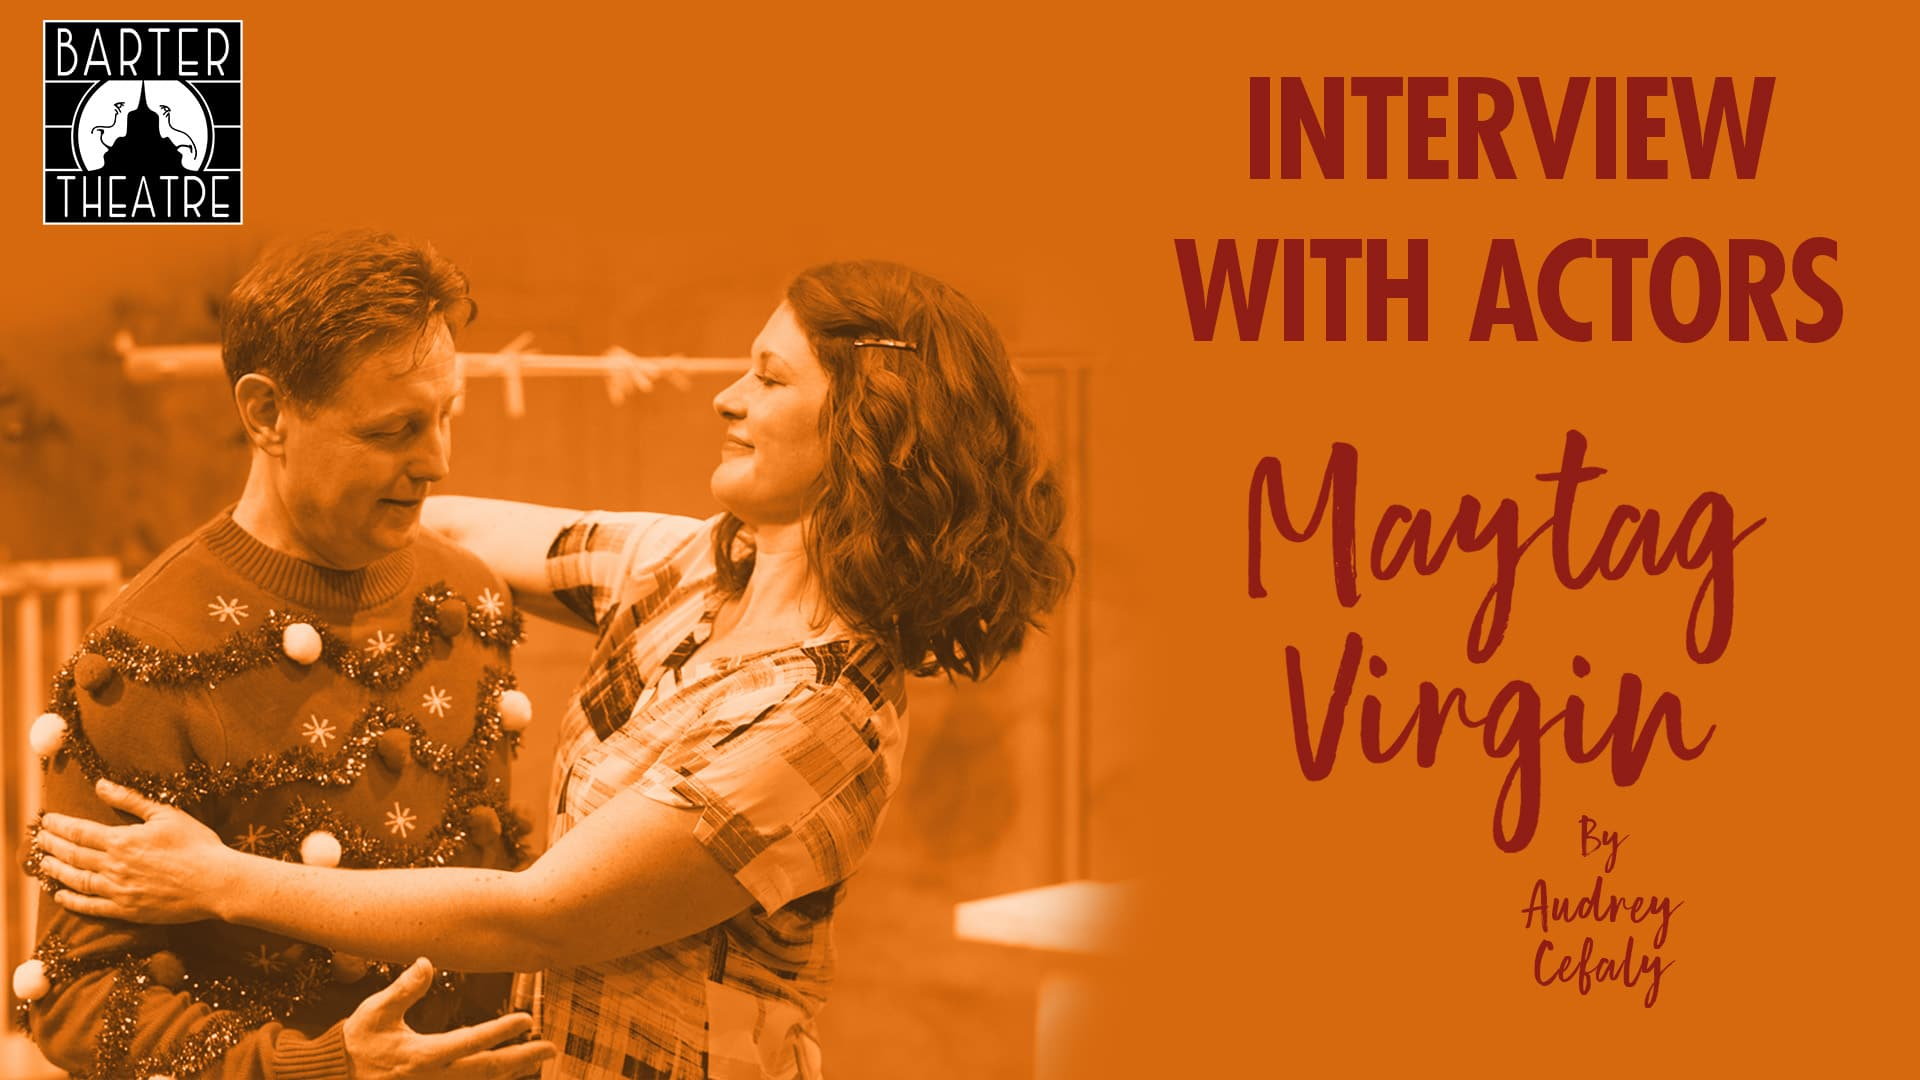 Title card for Maytag Virgin with the actors, Wendy Piper and Nicholas Piper